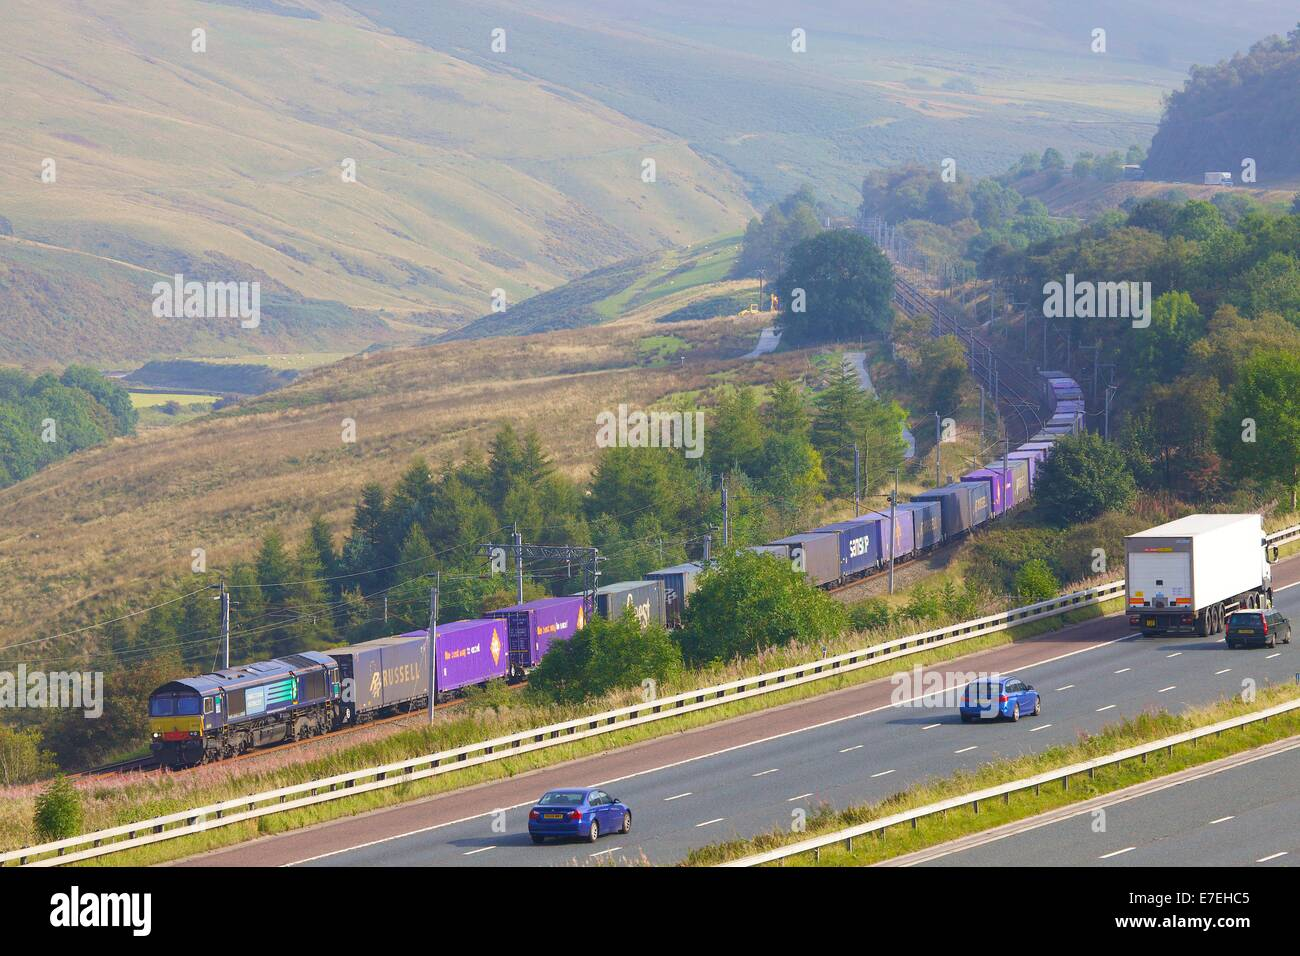 Direcr Rail Services (DRS) diesel freight train passing the M6 motorway in the River Lune Valley. Howgills, Cumbria, - Stock Image